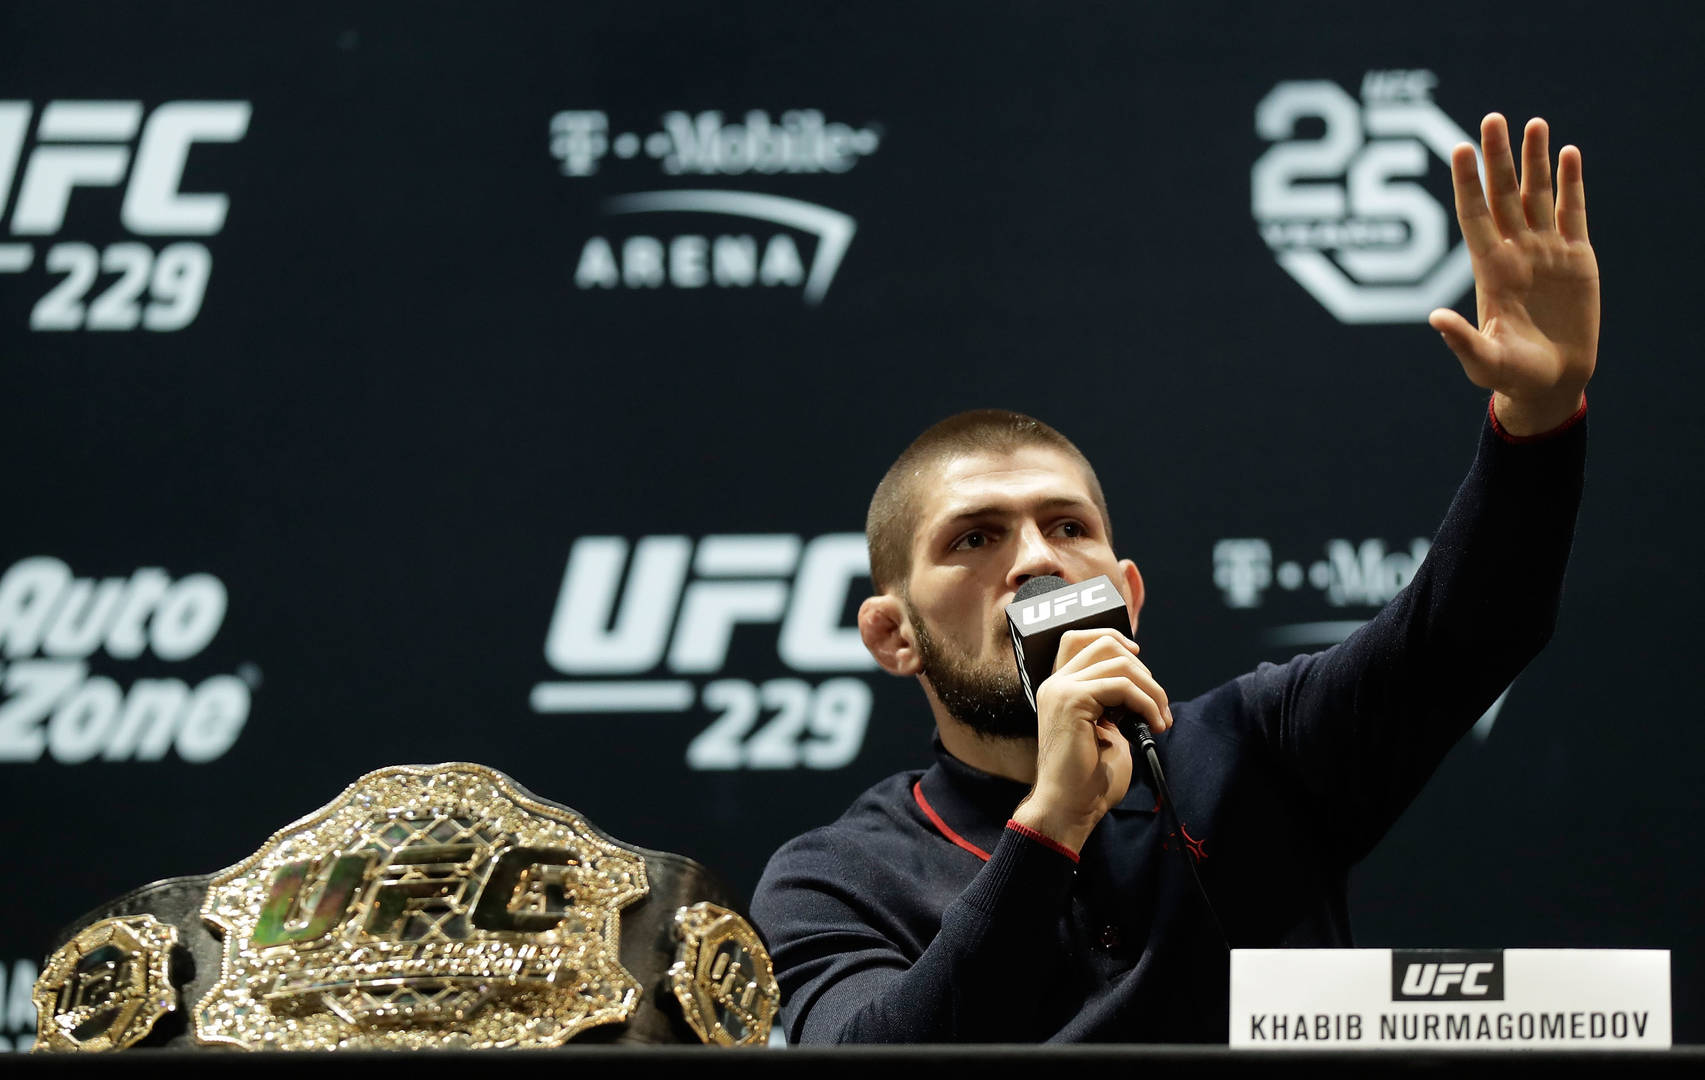 Khabib Nurmagomedov Could Return After UFC 257, Dana White Says